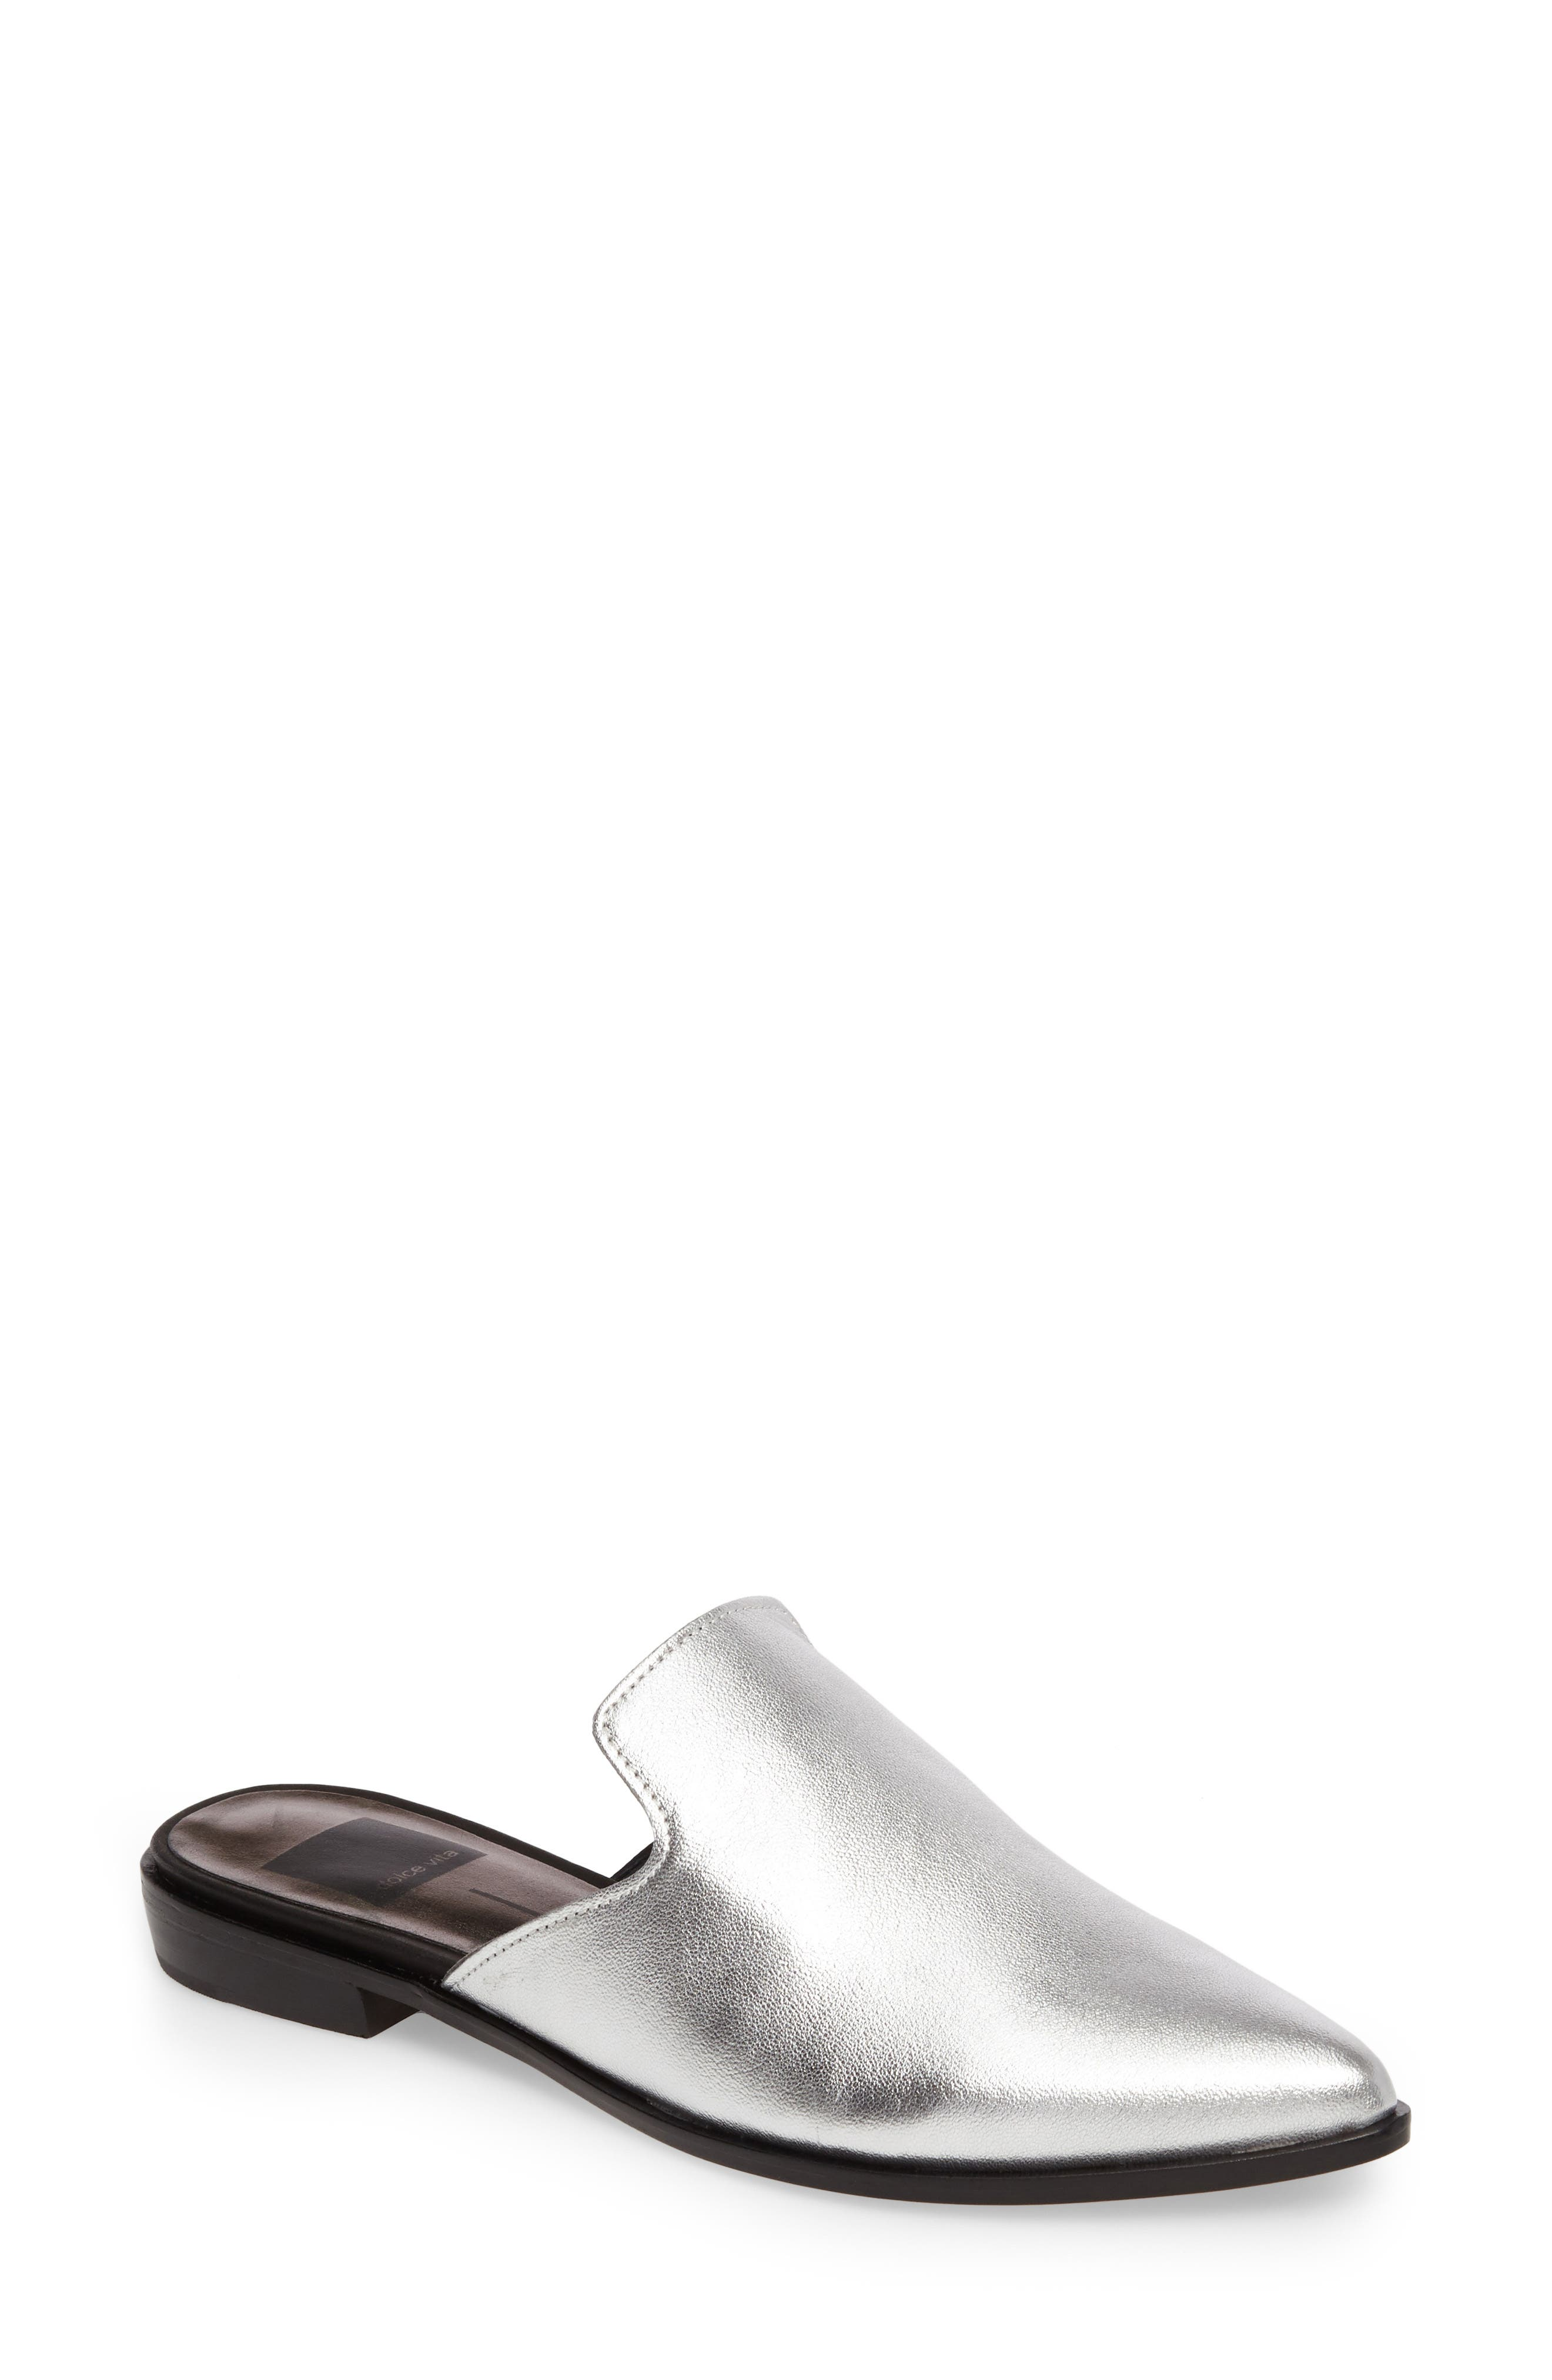 Holli Loafer Mule,                             Main thumbnail 1, color,                             Silver Leather